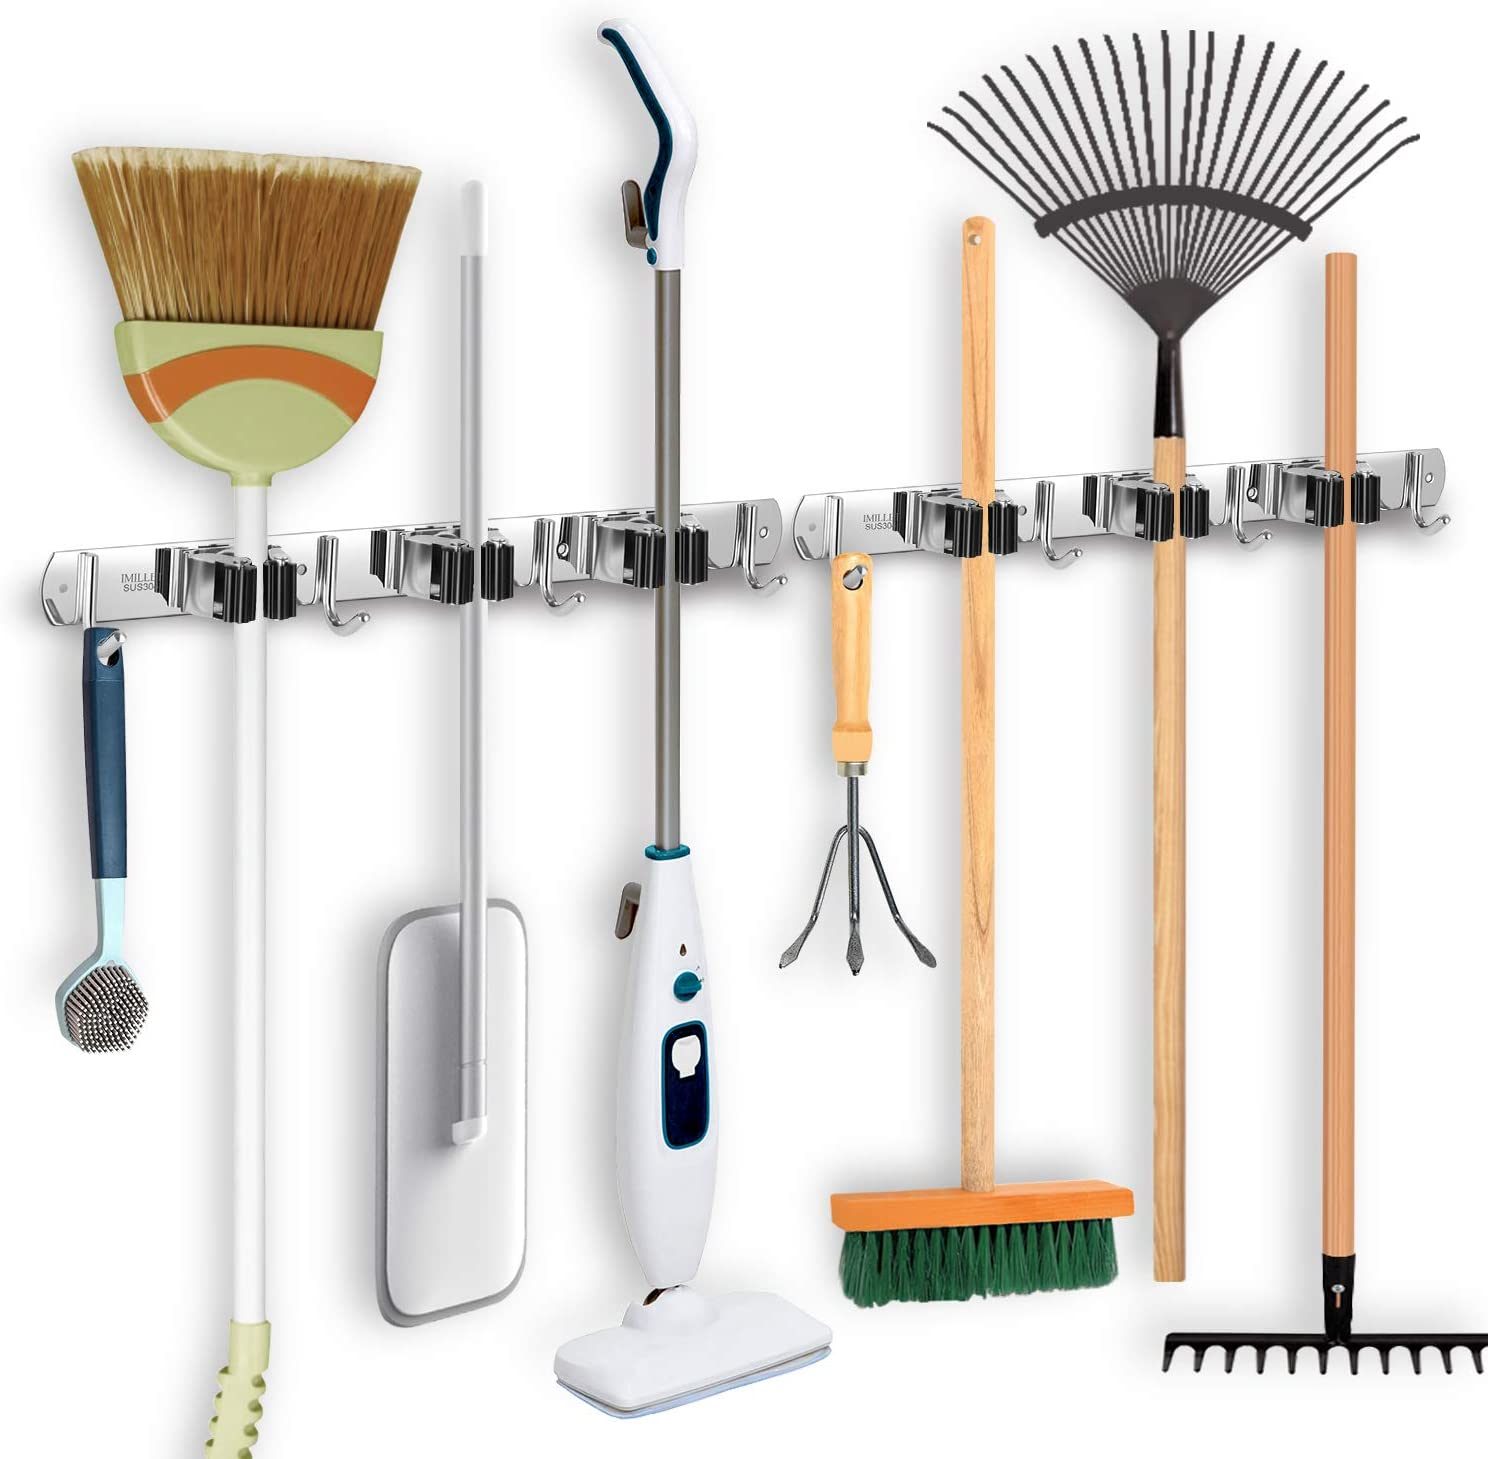 IMILLET Broom and Mop Holder Wall Mounted Broom Holder Stainless Steel Mop Holder Self Adhesive Heavy Duty Hooks Storage Organizer for Laundry Room Garden Garage Closet Kitchen (2 Pack)